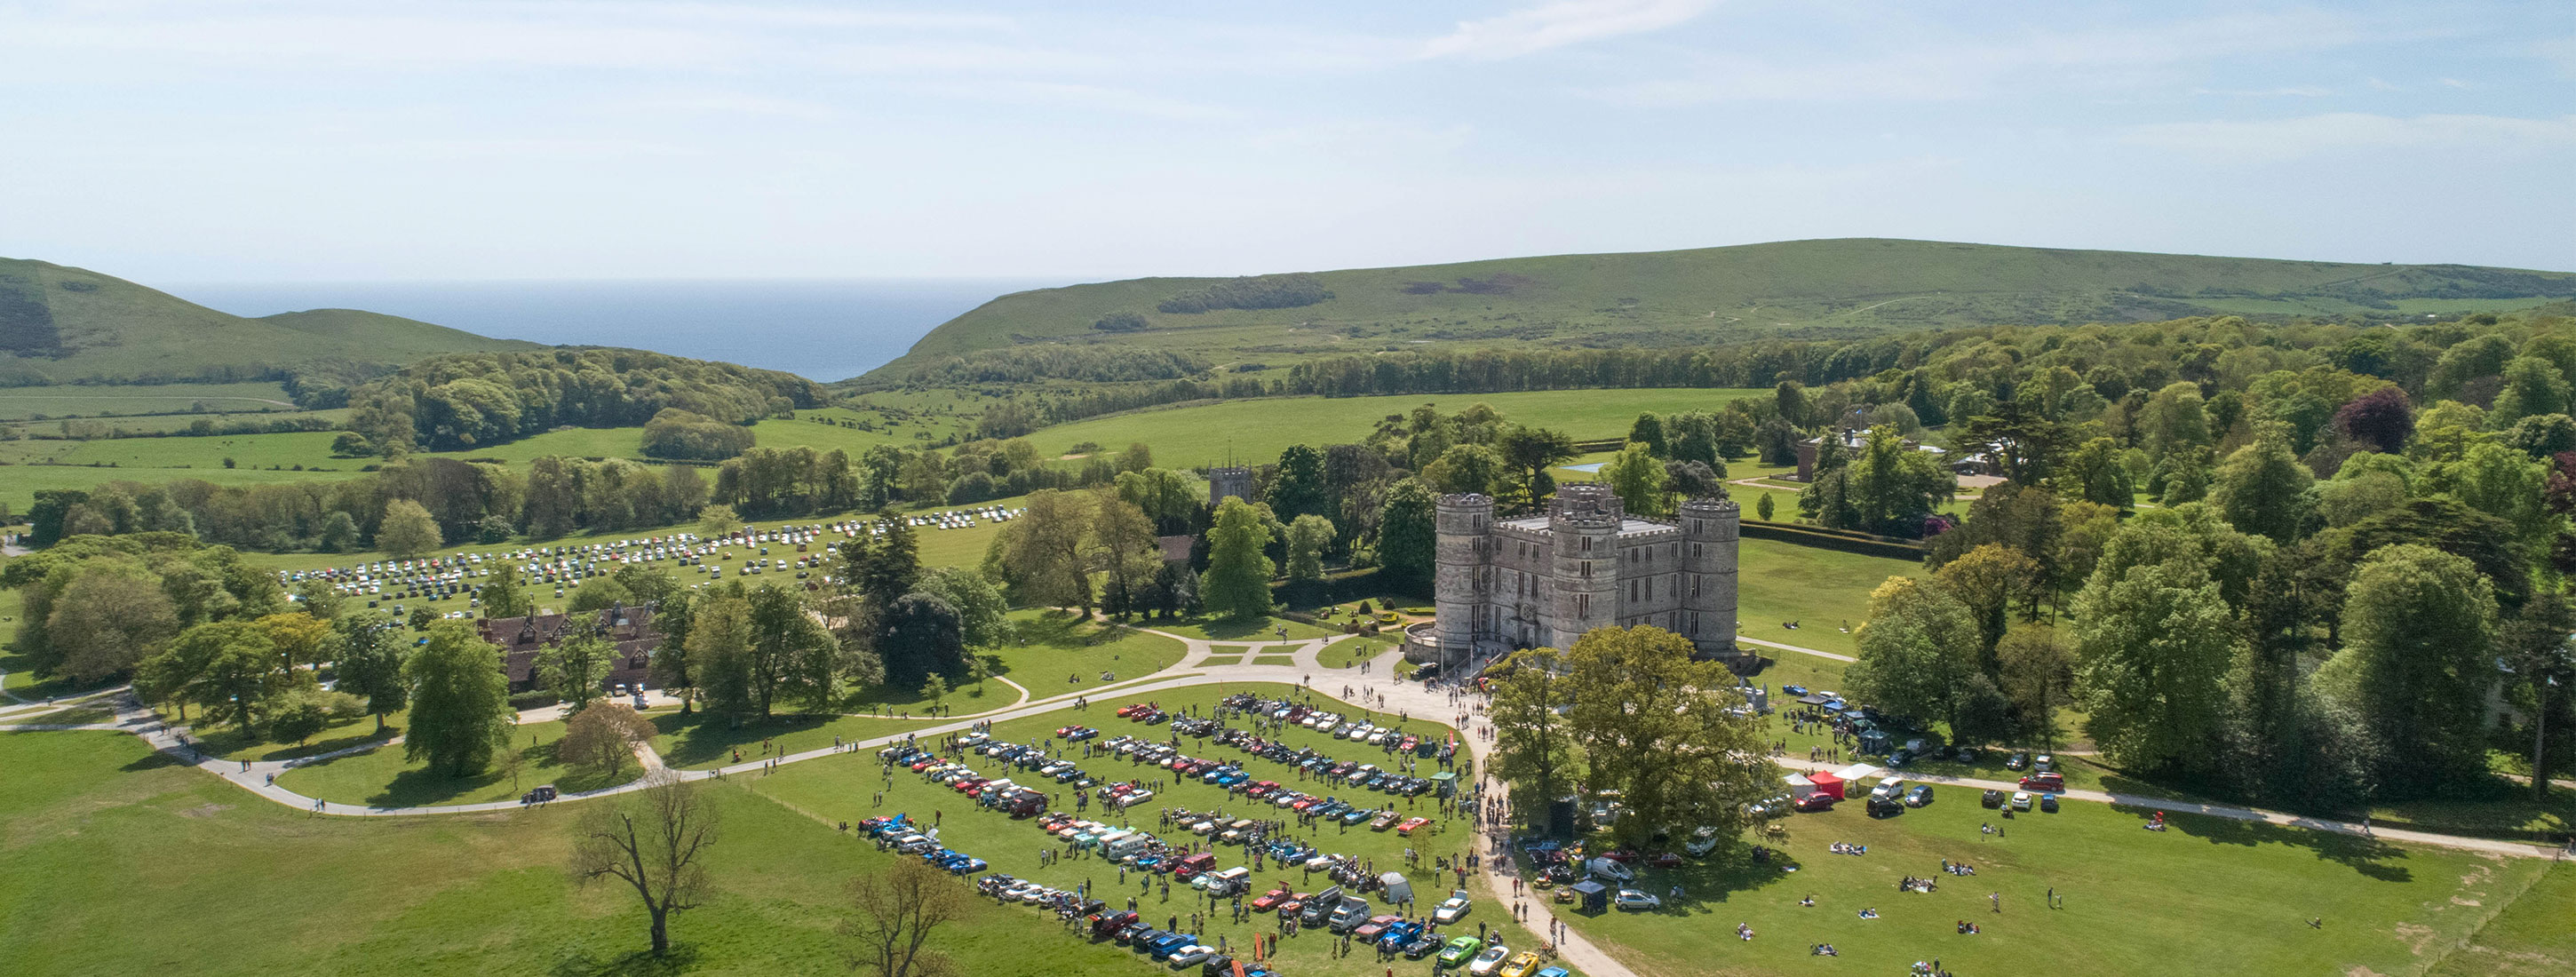 Vintage Car Rally 2018 Lulworth Castle